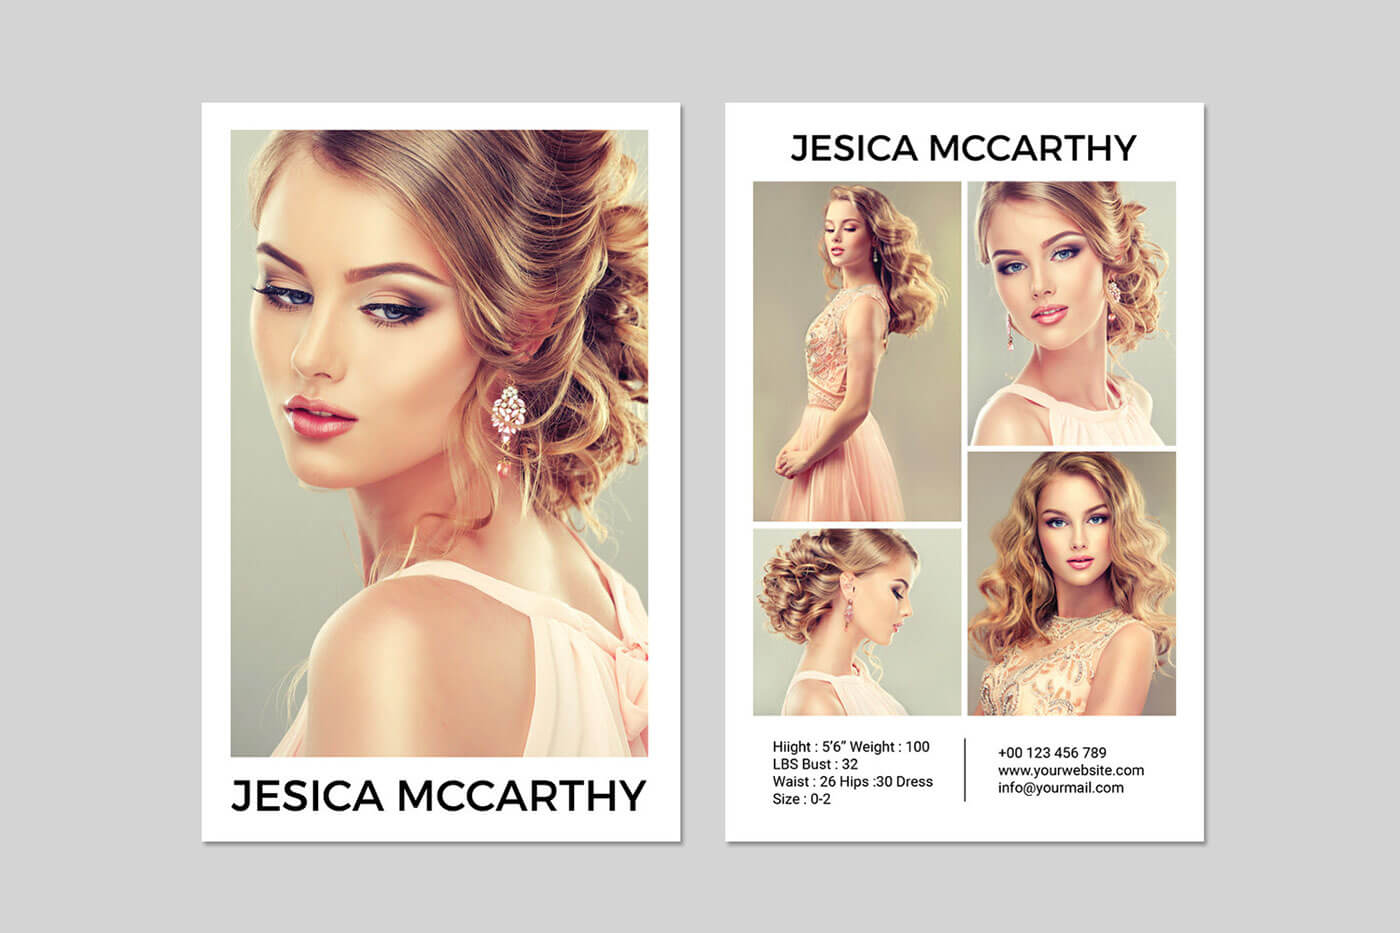 031 Model Comp Card Template Outstanding Ideas Psd Free Pertaining To Model Comp Card Template Free